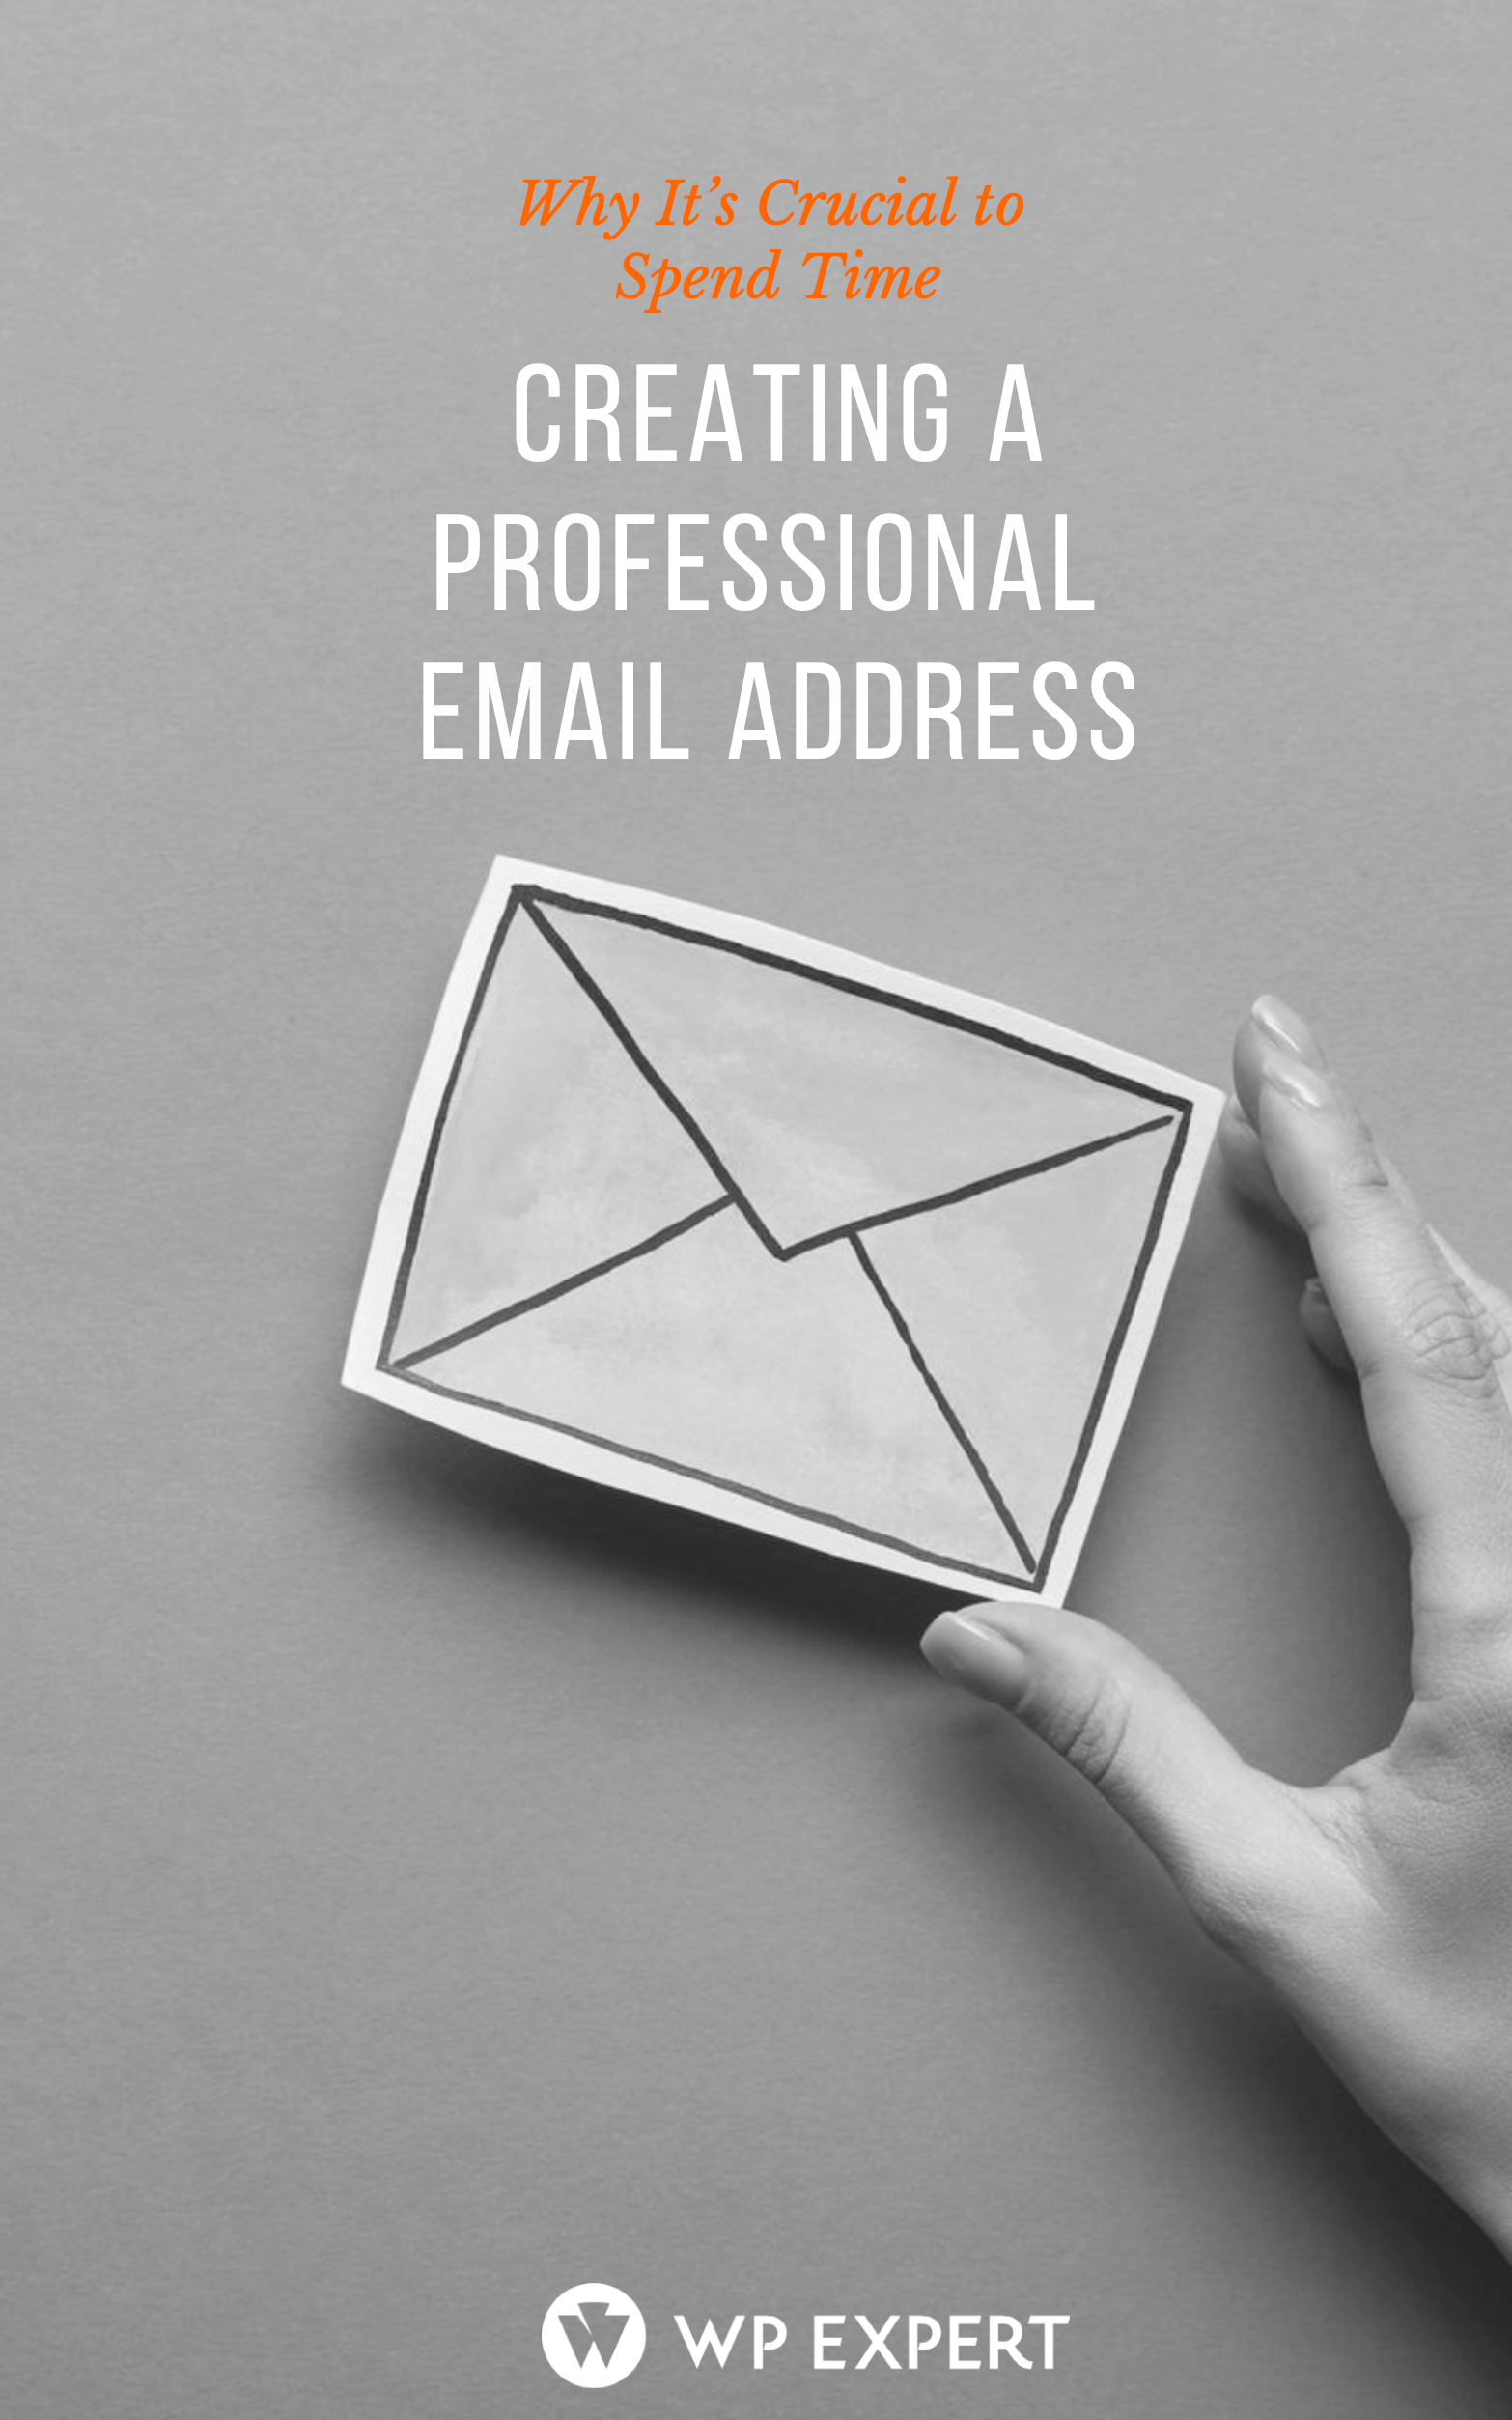 Why It's Crucial to Spend Time Creating a Professional Email Address